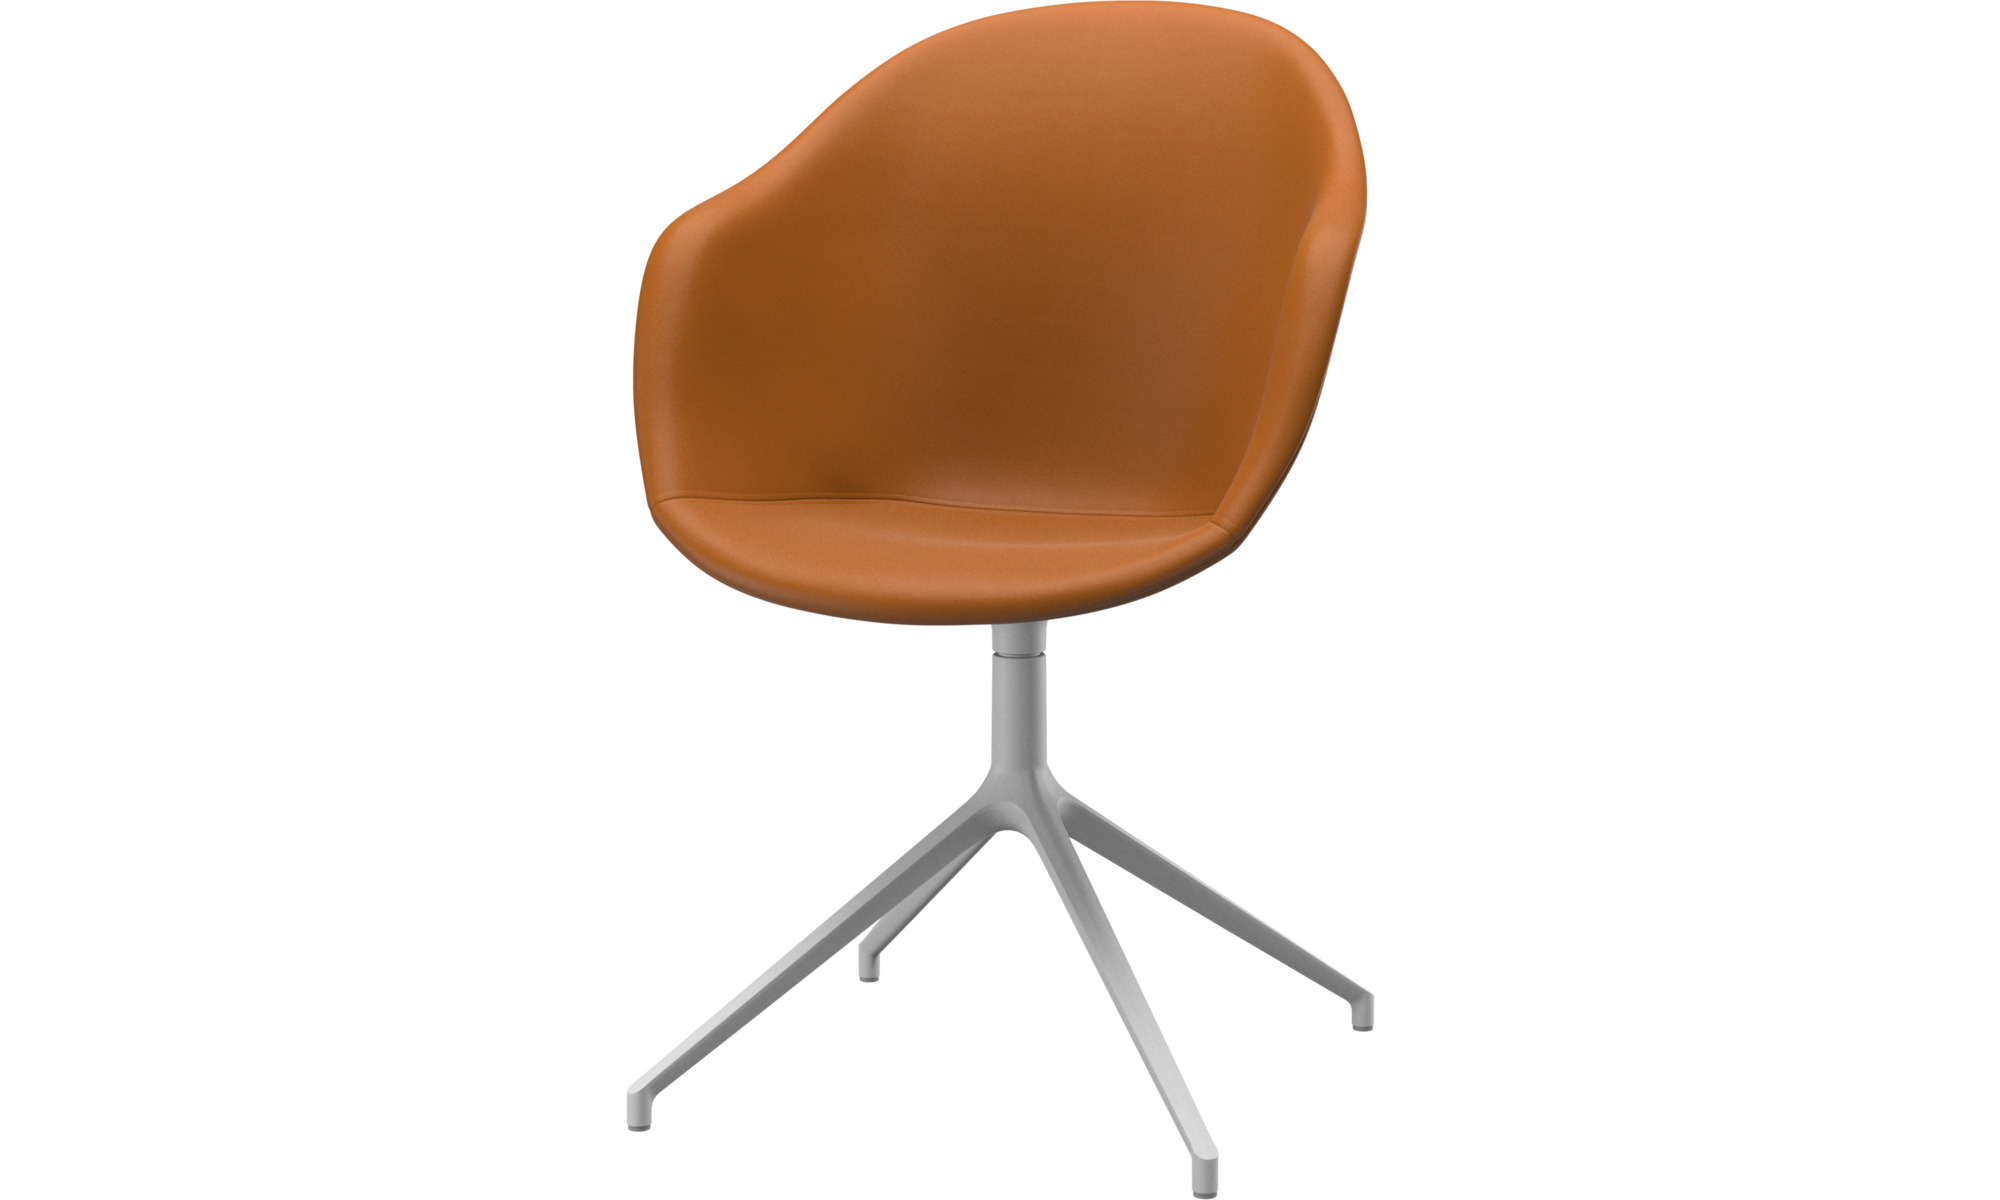 Home office chairs - Adelaide chair with swivel function - Brown - Leather